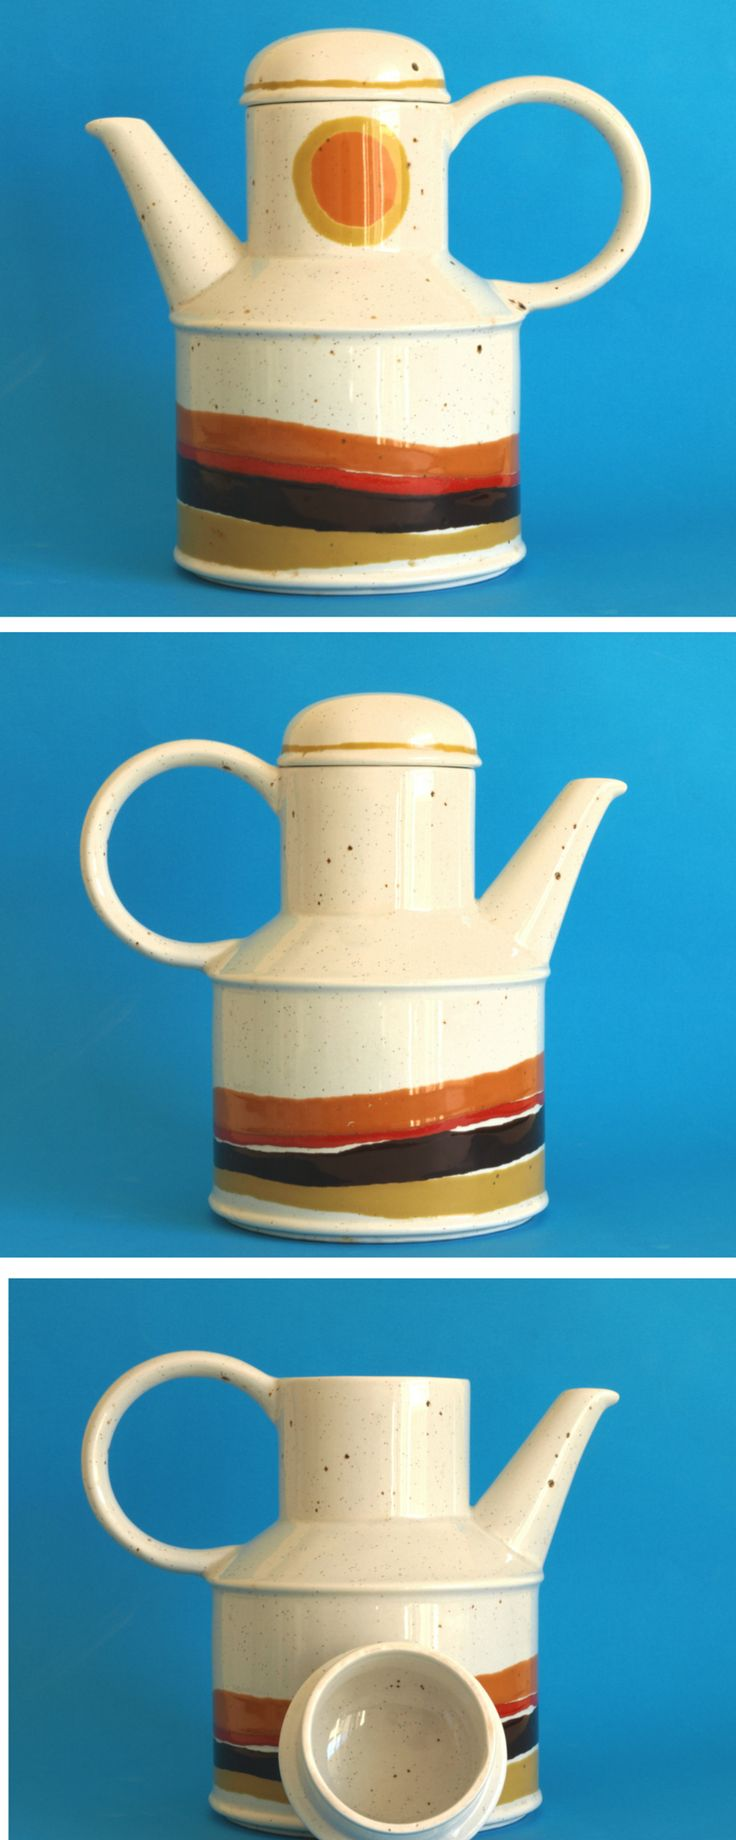 Midwinter Stonehenge Day Coffee Pot - Retro 70s Orange Wedgewood Coffee Pot by Roy Midwinter - Made in England